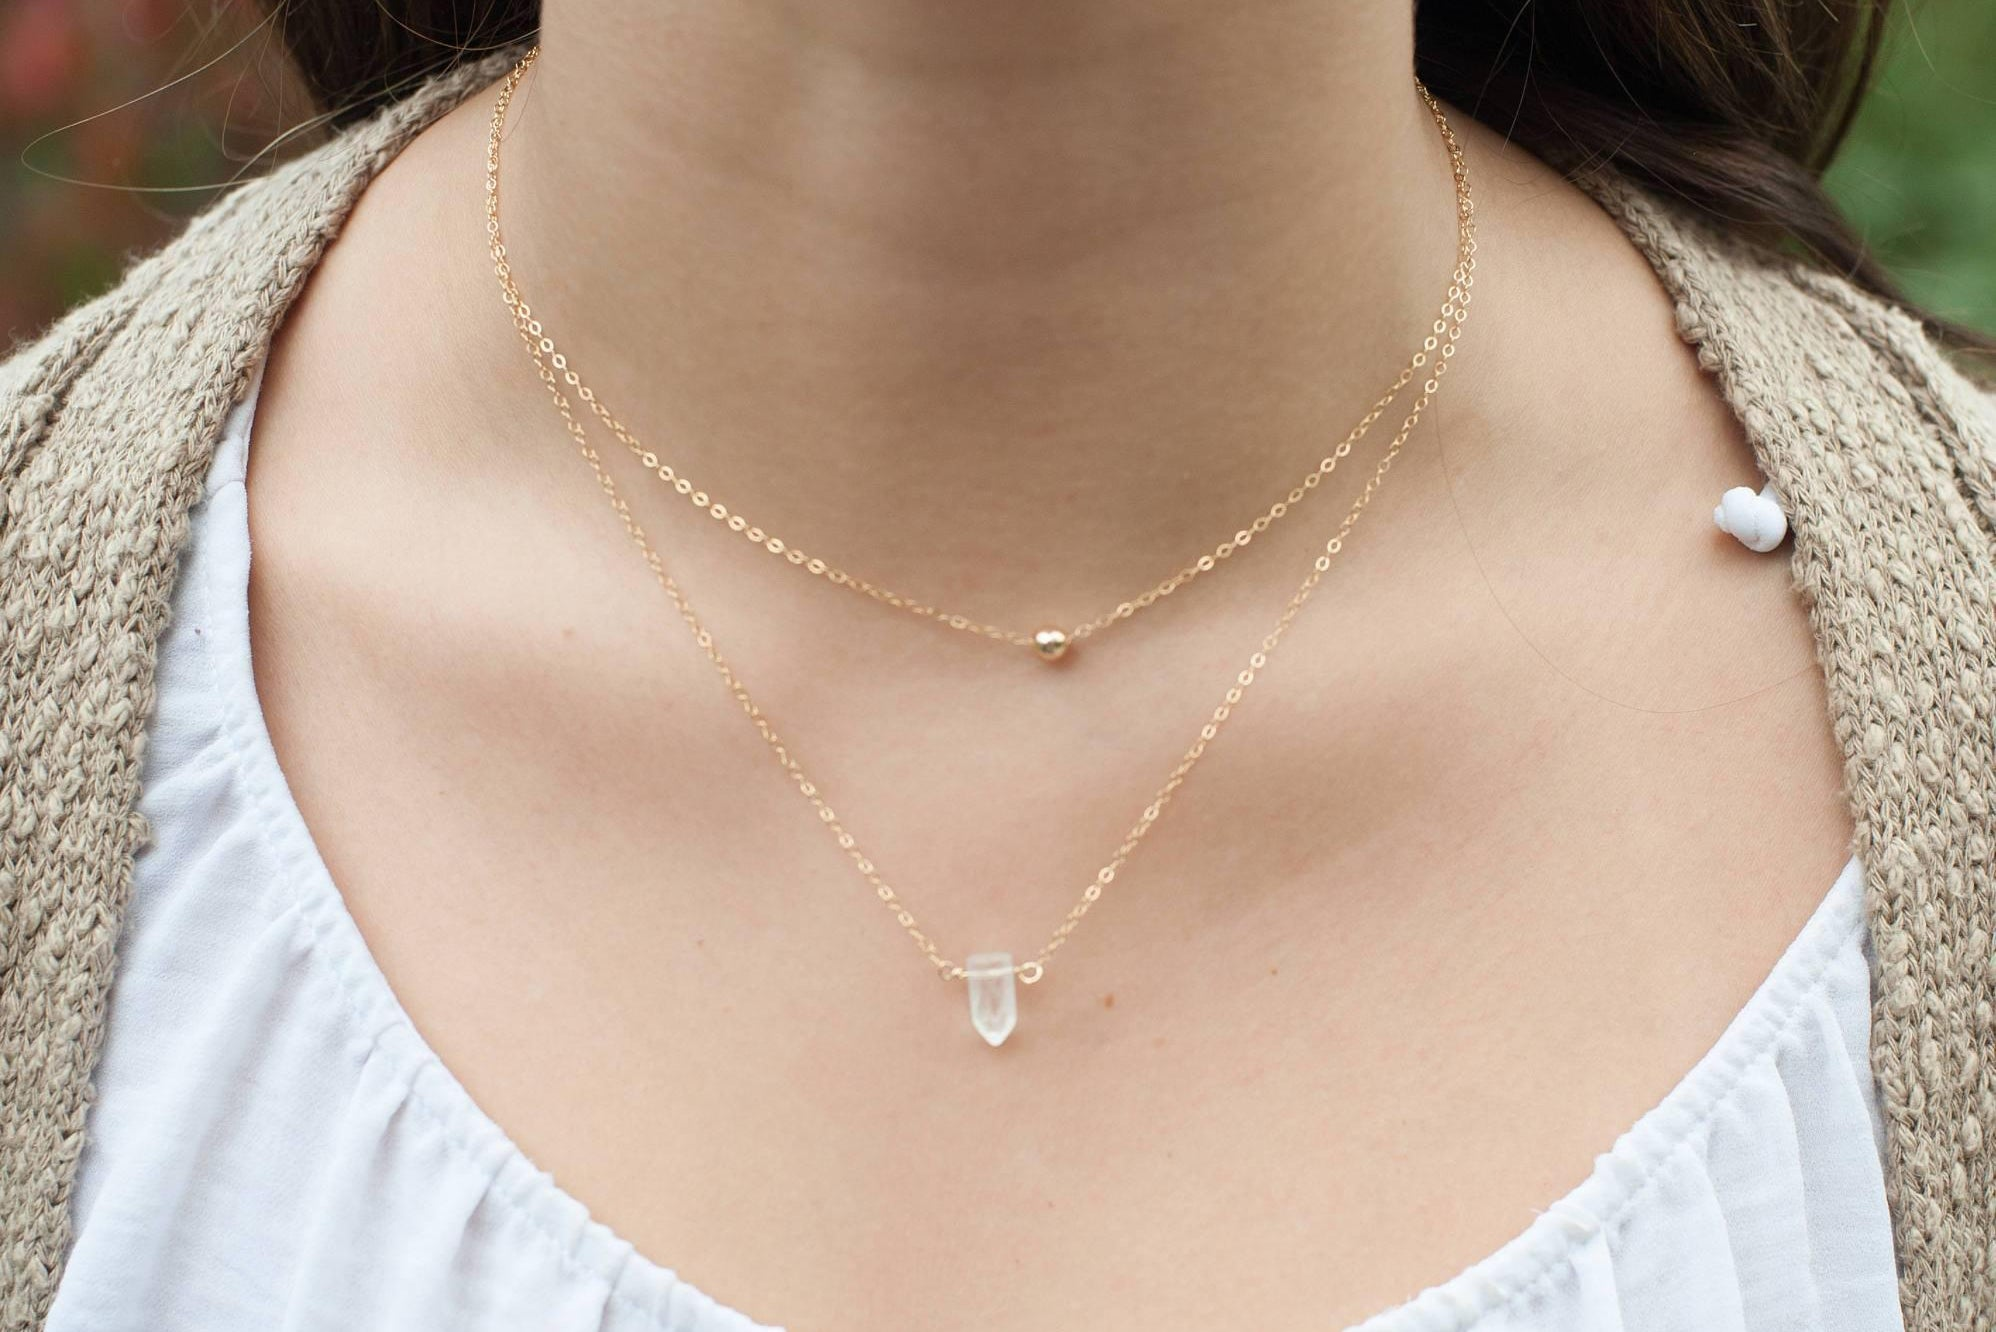 Tiny Crystal Healing Necklace - 14K Gold or Sterling Silver-Sela+Sage